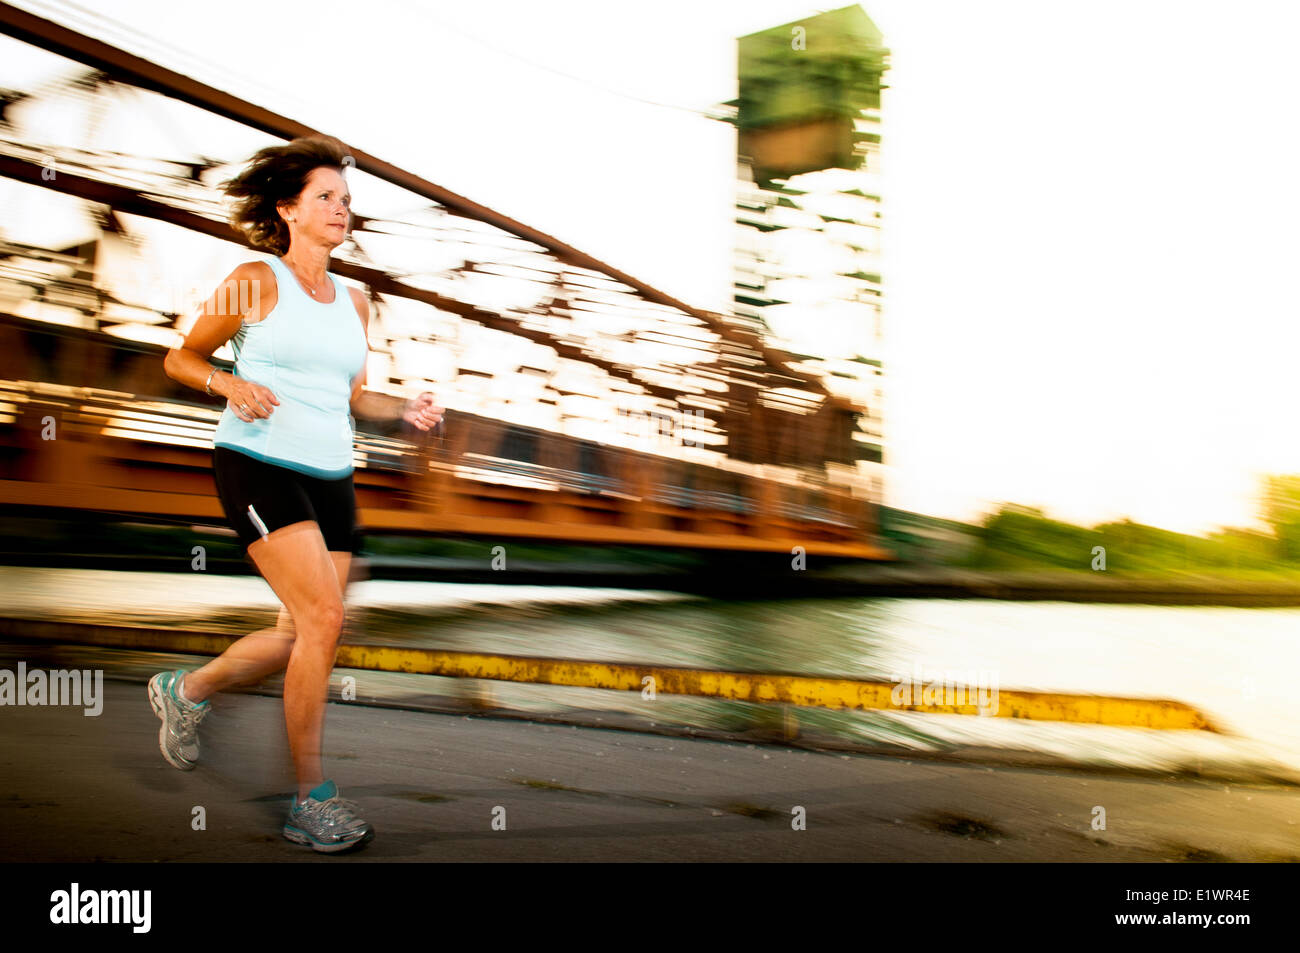 Attractive woman in her 50's jogging on an urban trail. - Stock Image